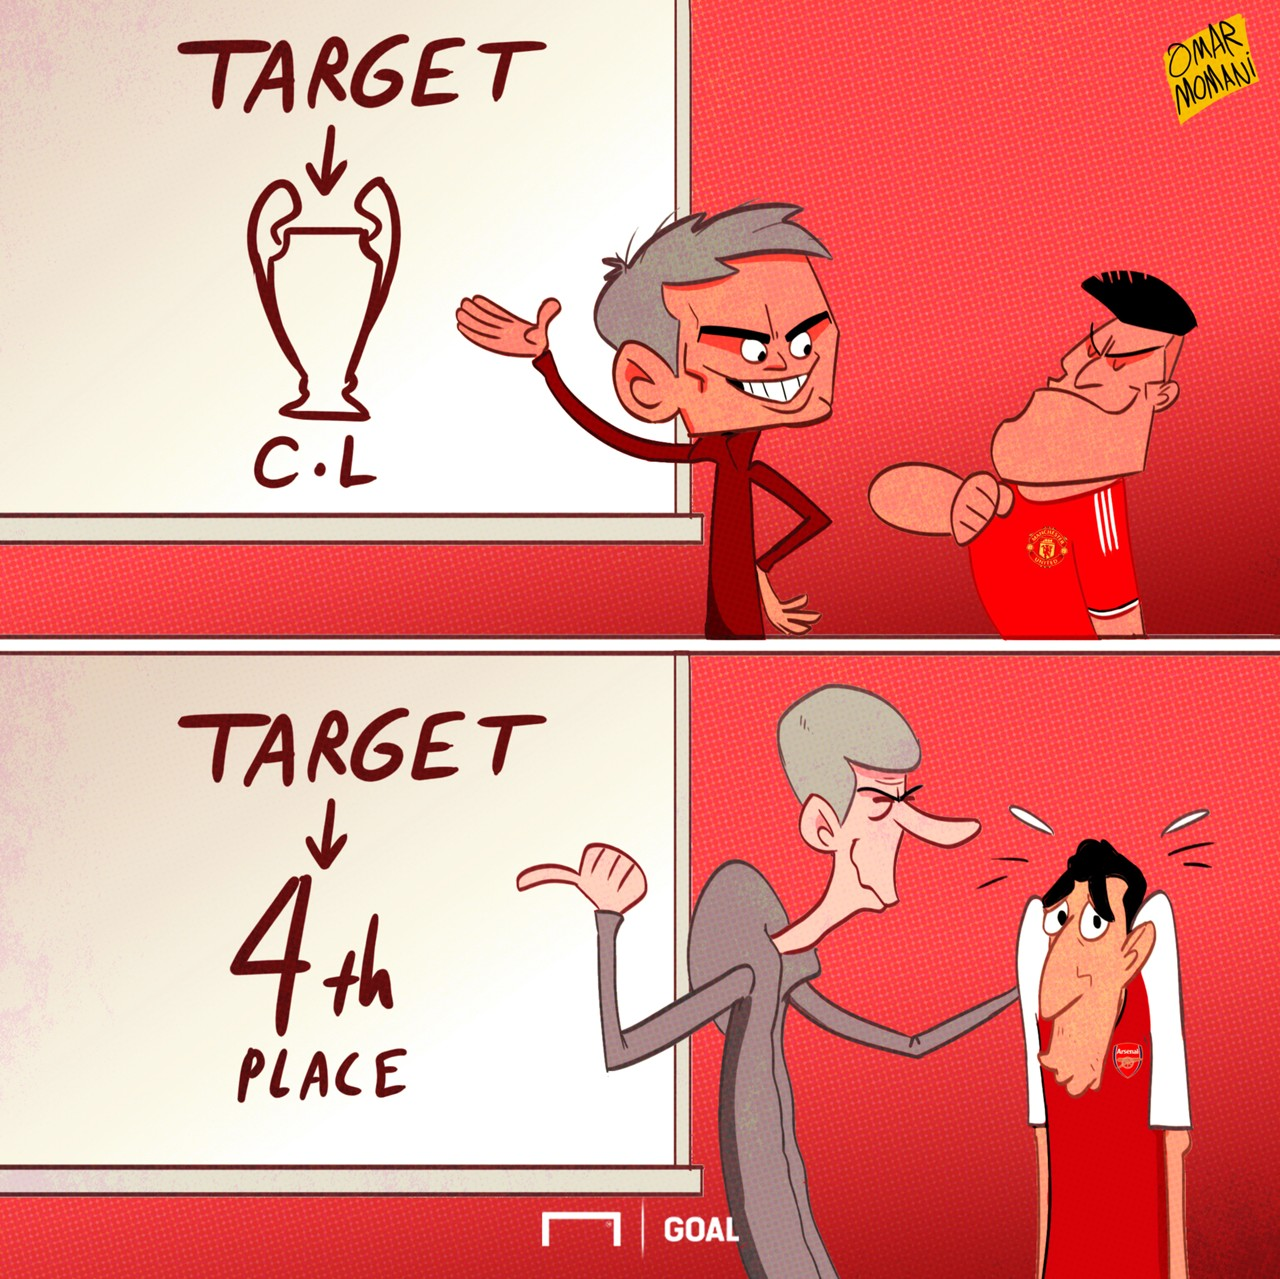 CARTOON Alexis & Mkhitaryan's missions